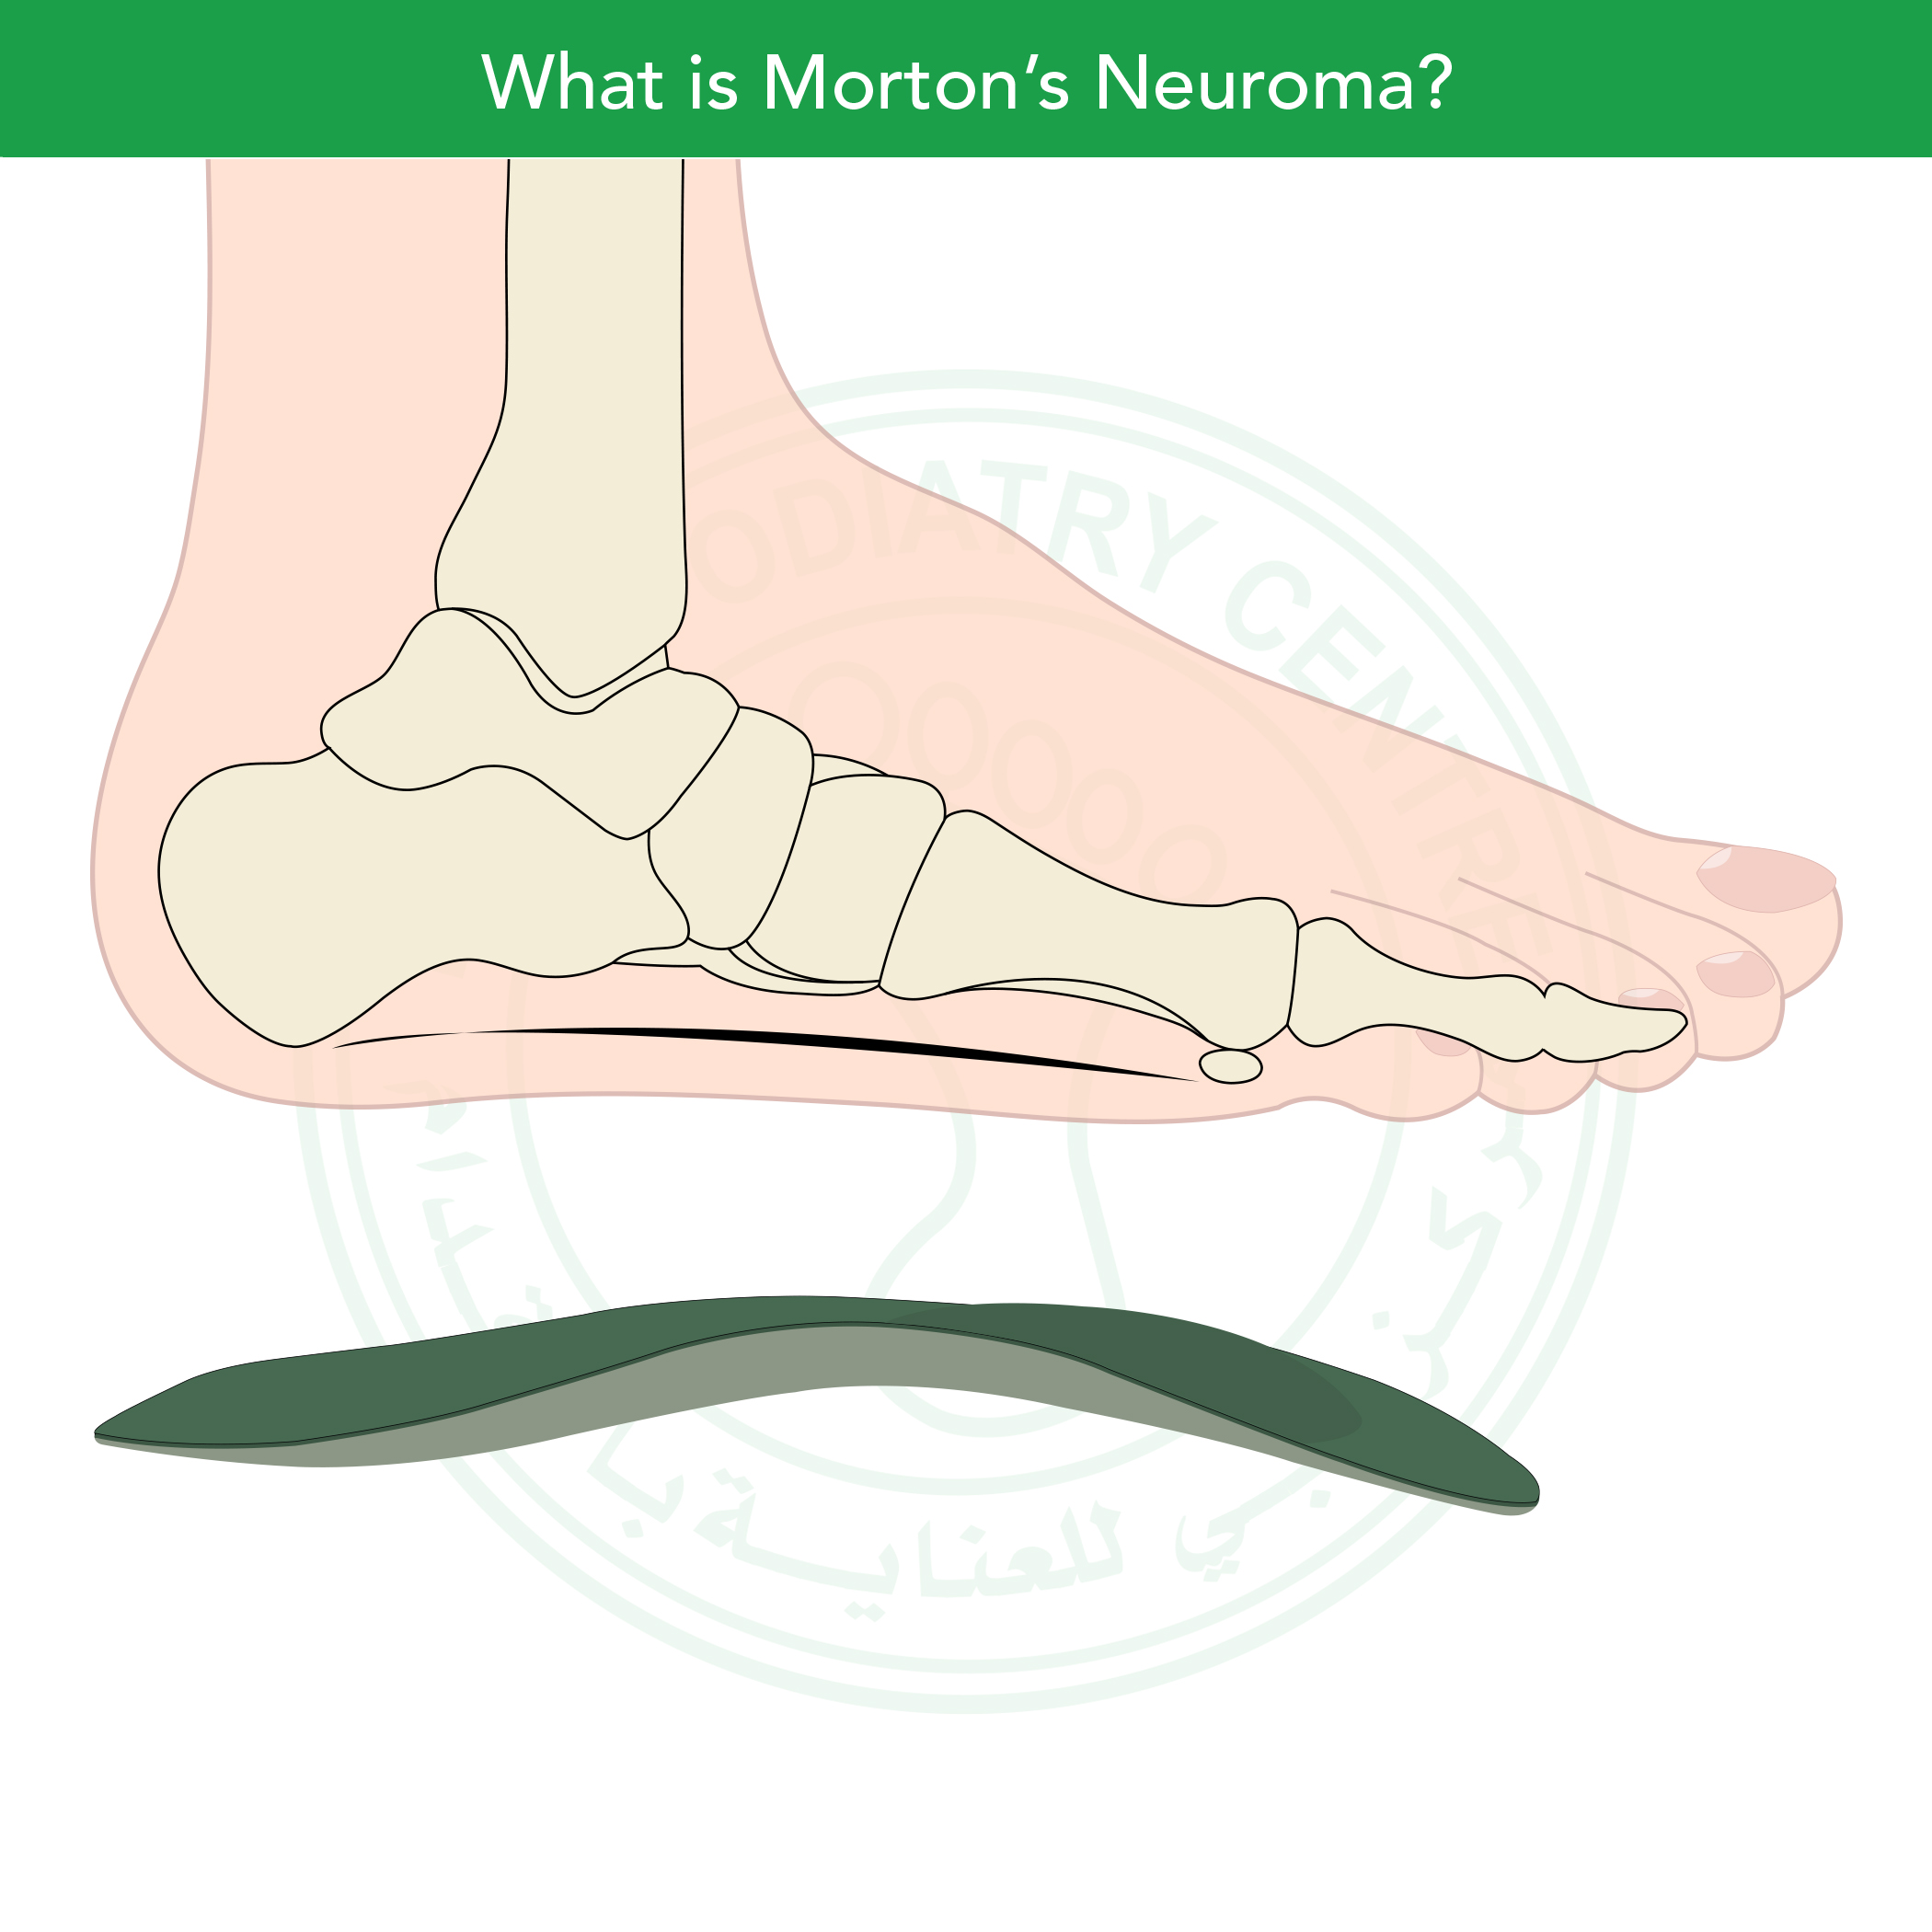 http://dubaipodiatry.com/wp-content/uploads/2019/03/DPC-voice-record_Mortons-Neuroma-25.jpg